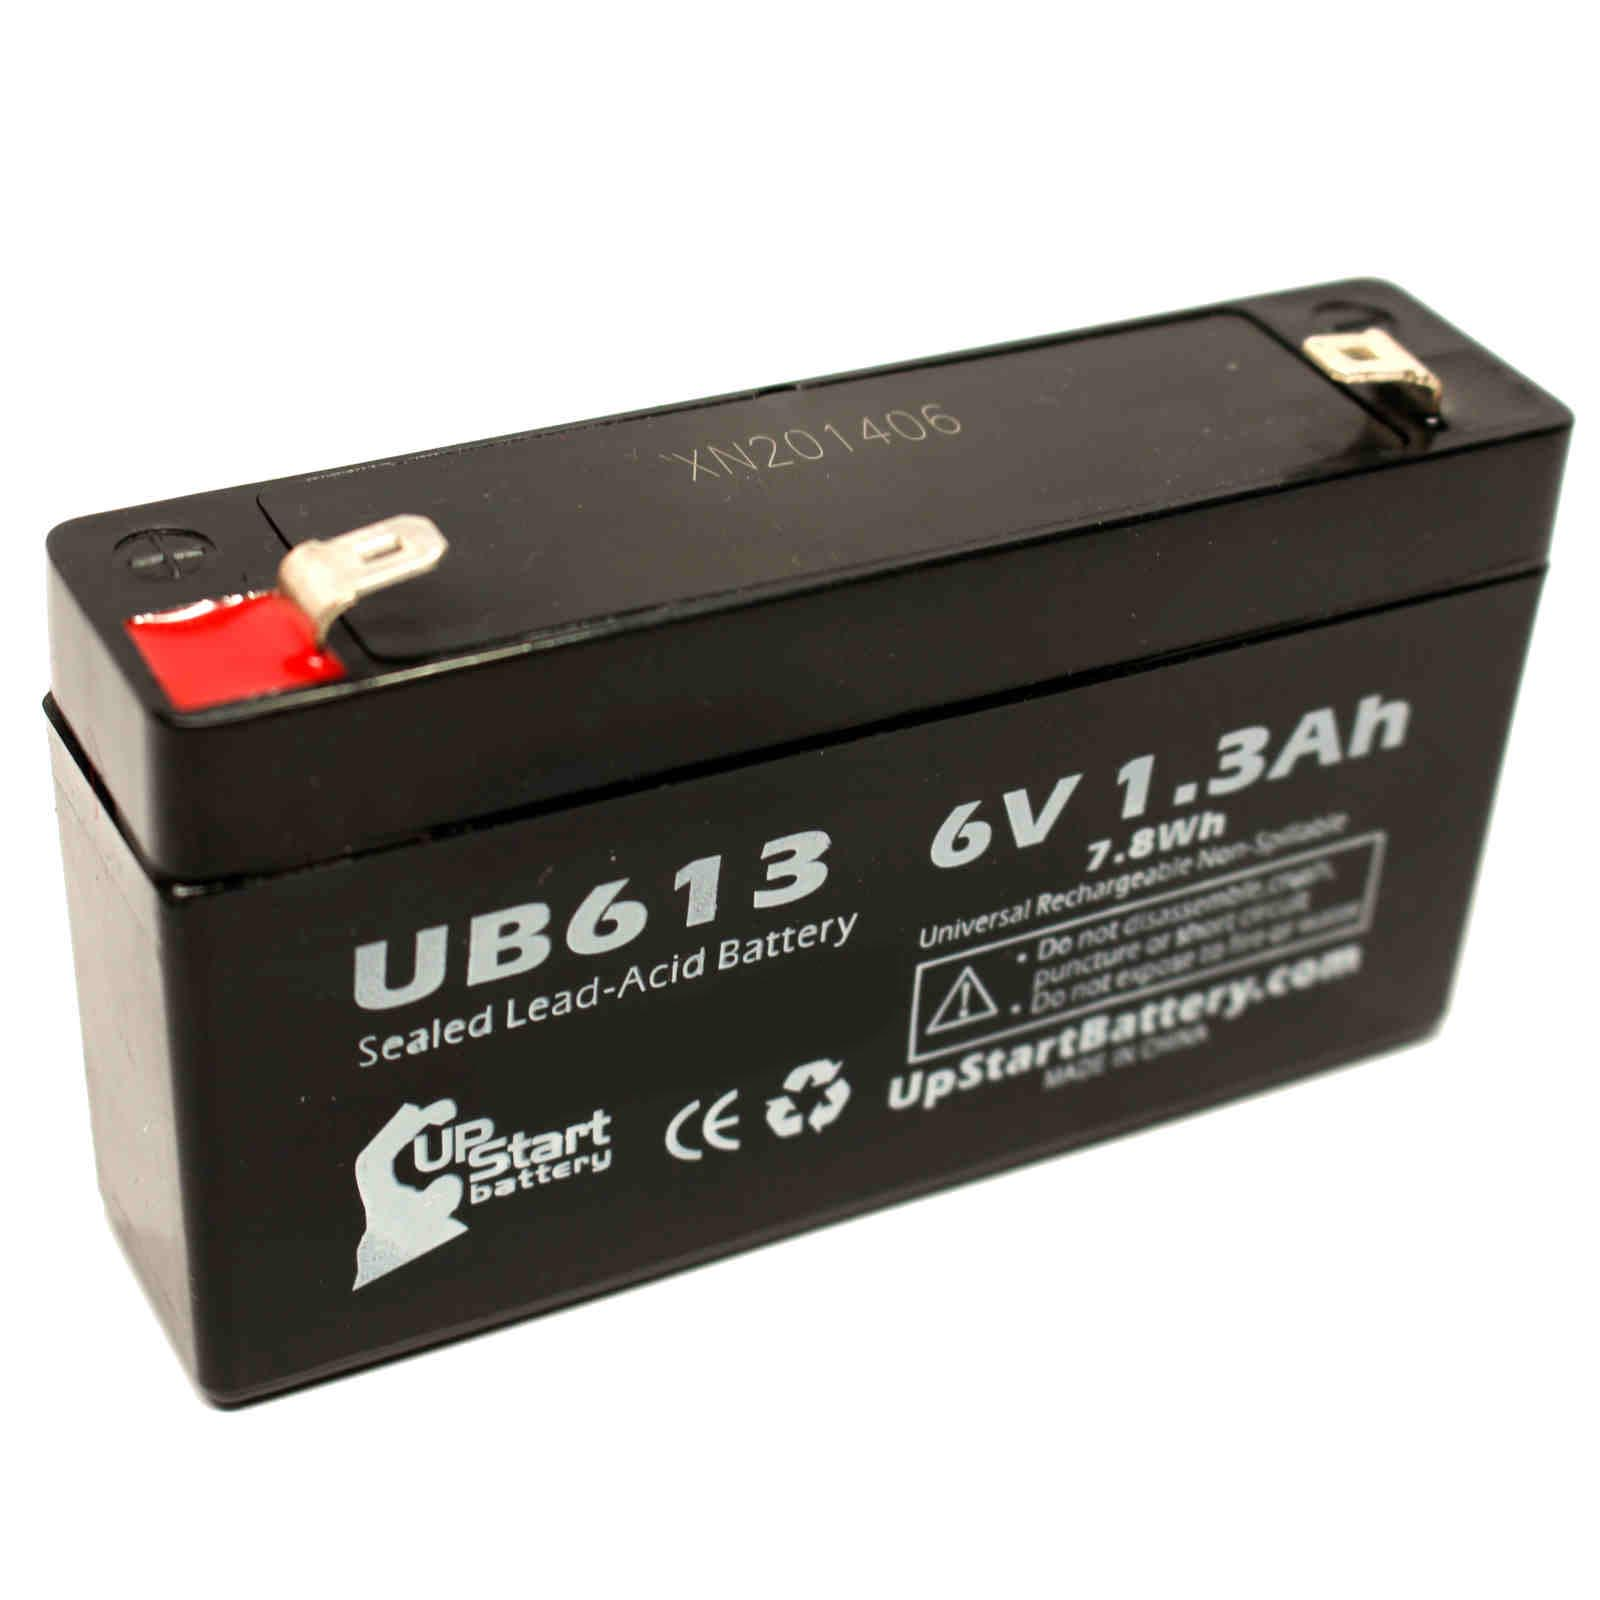 ACME MEDICAL 2500 SCALE OPTION Battery Replacement - UB613 Universal Sealed Lead Acid Battery (6V, 1.3Ah, 1300mAh, F1 Terminal, AGM, SLA) - Includes TWO F1 to F2 Terminal Adapters - image 4 de 4